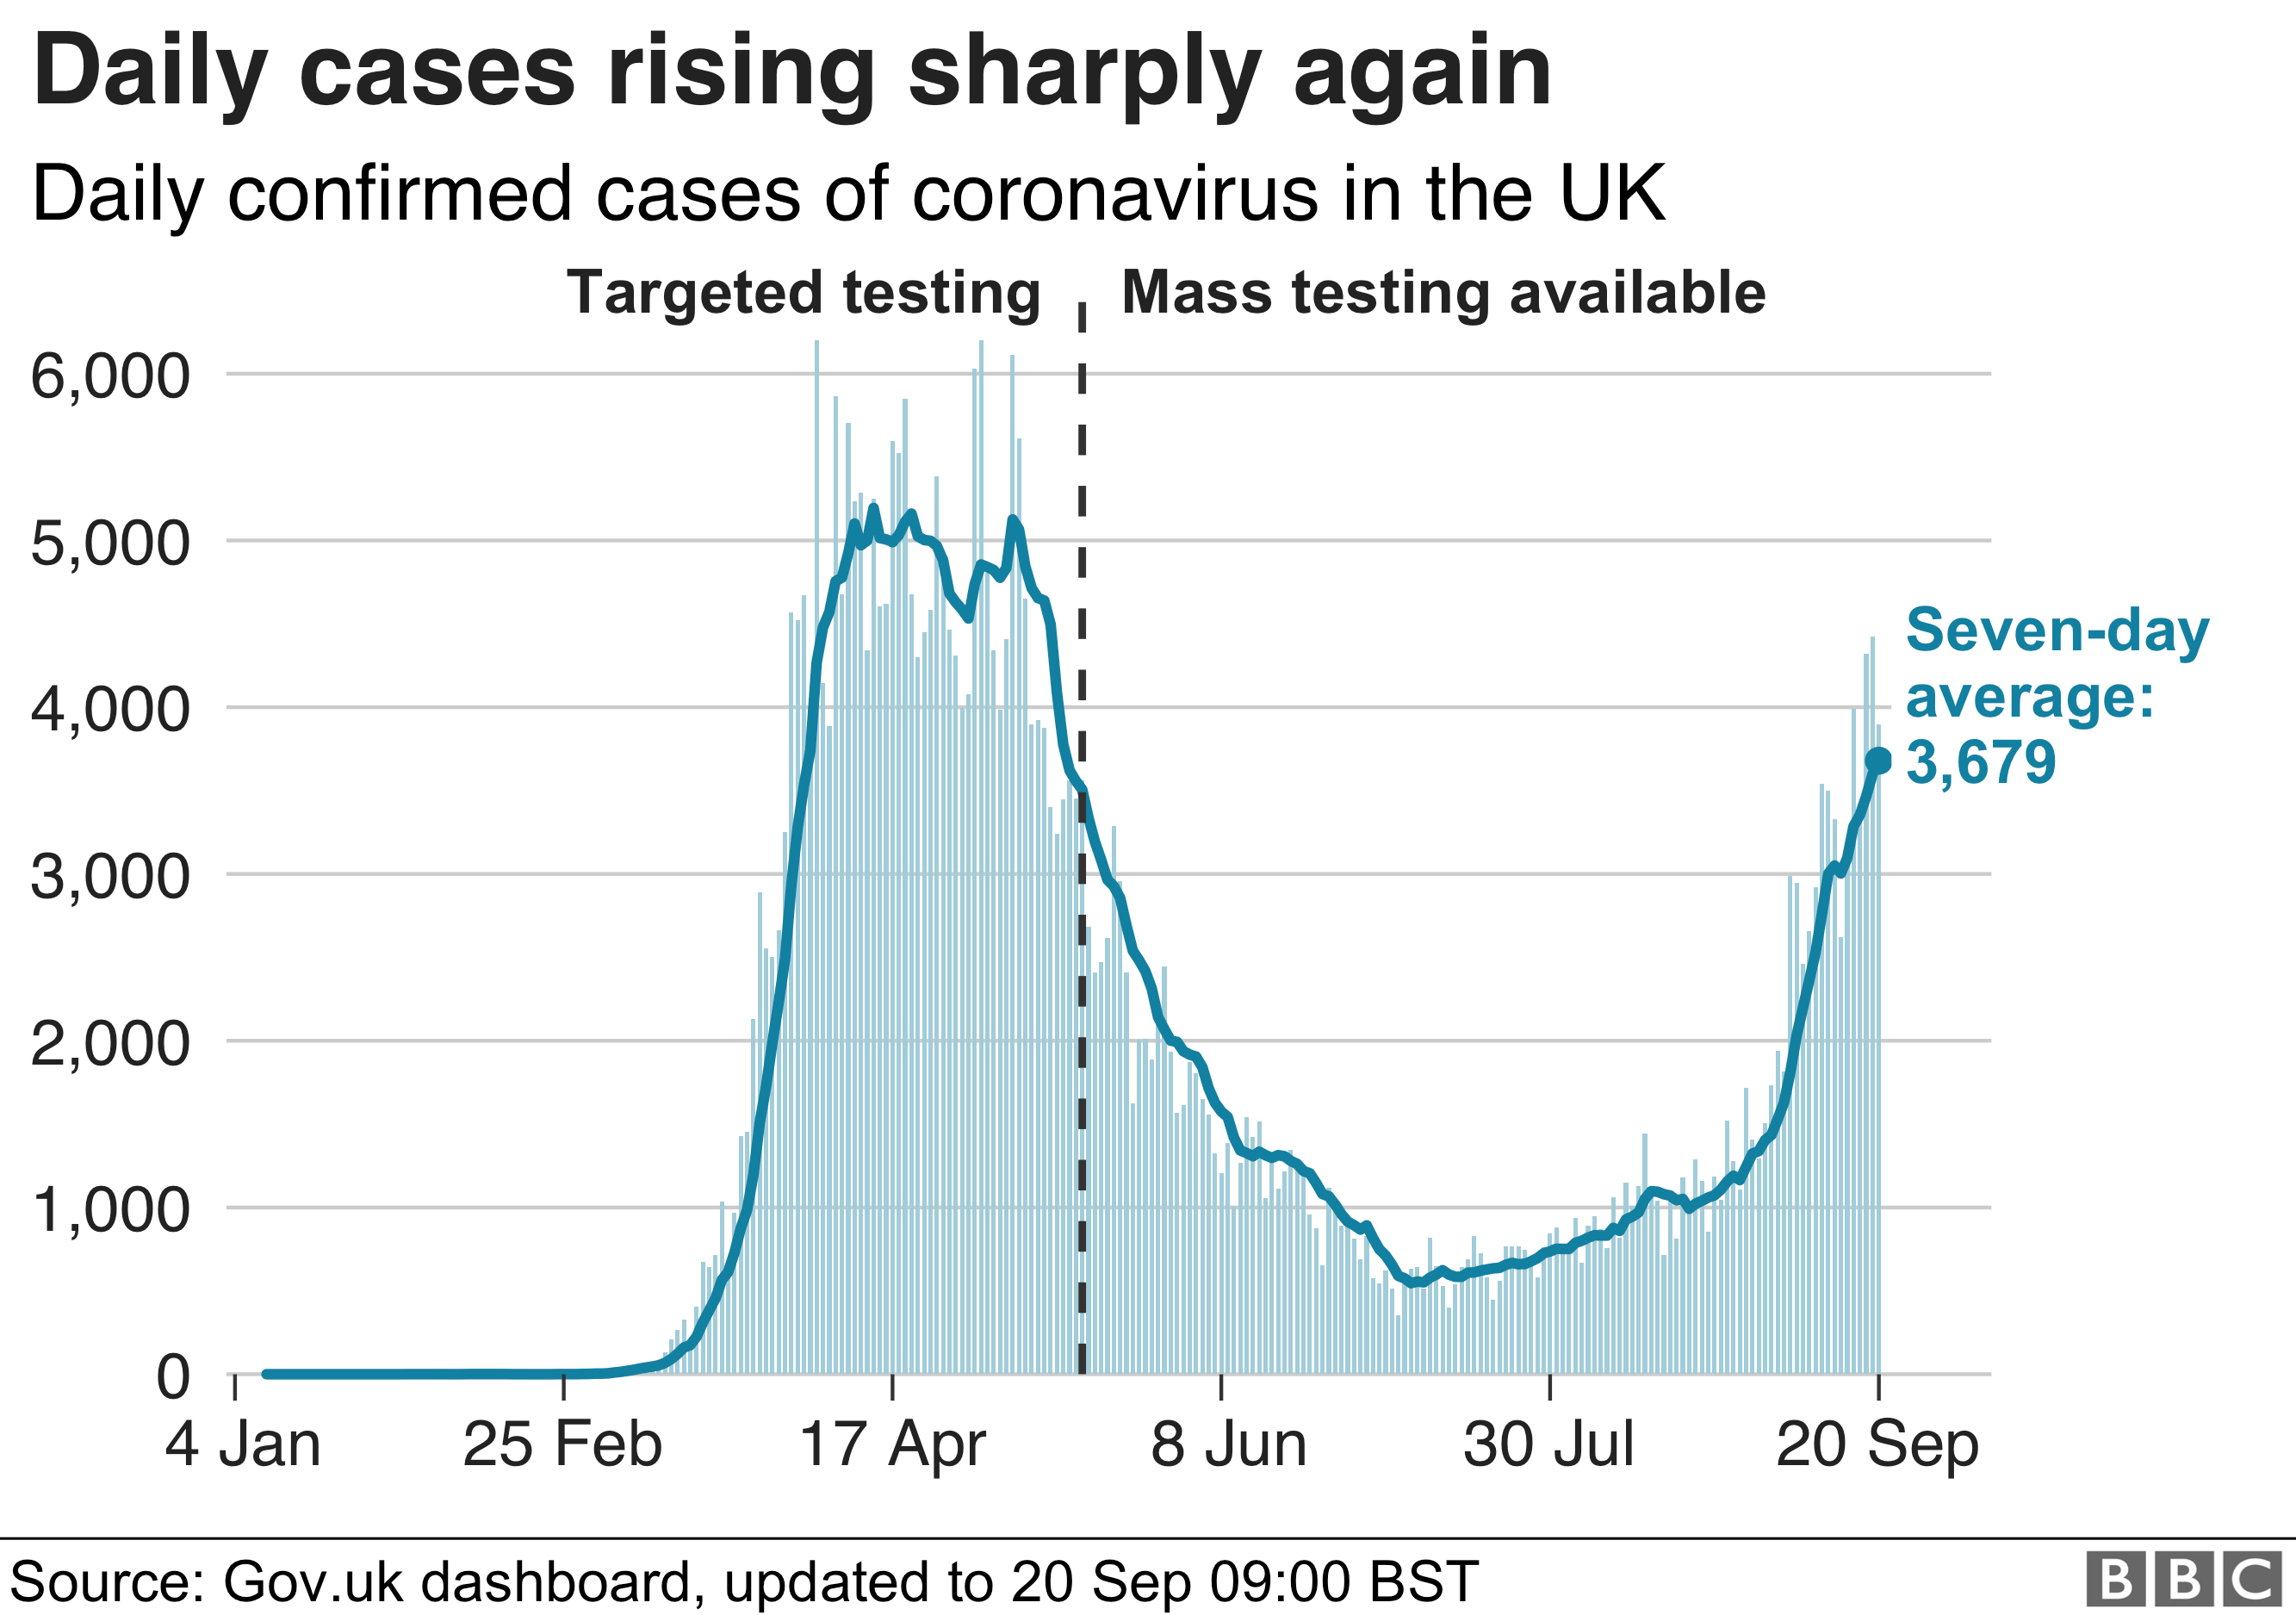 Graph showing daily cases rising